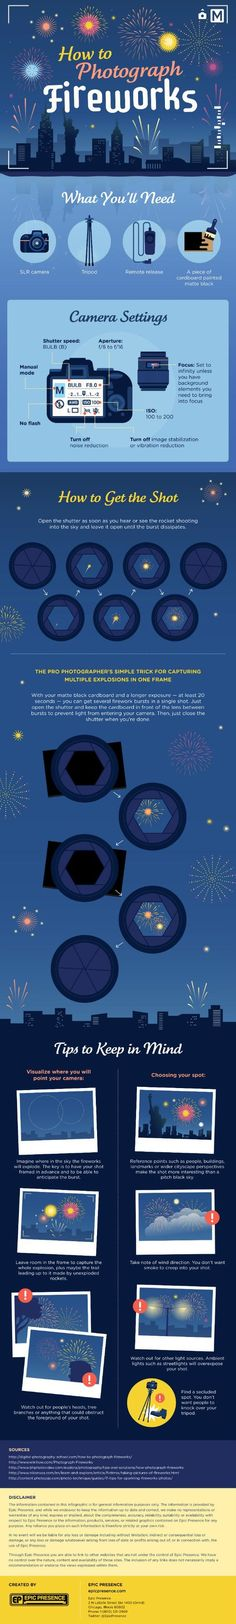 Photography tips | You Can Use this infographic to Take Better Photos of Fireworks at night